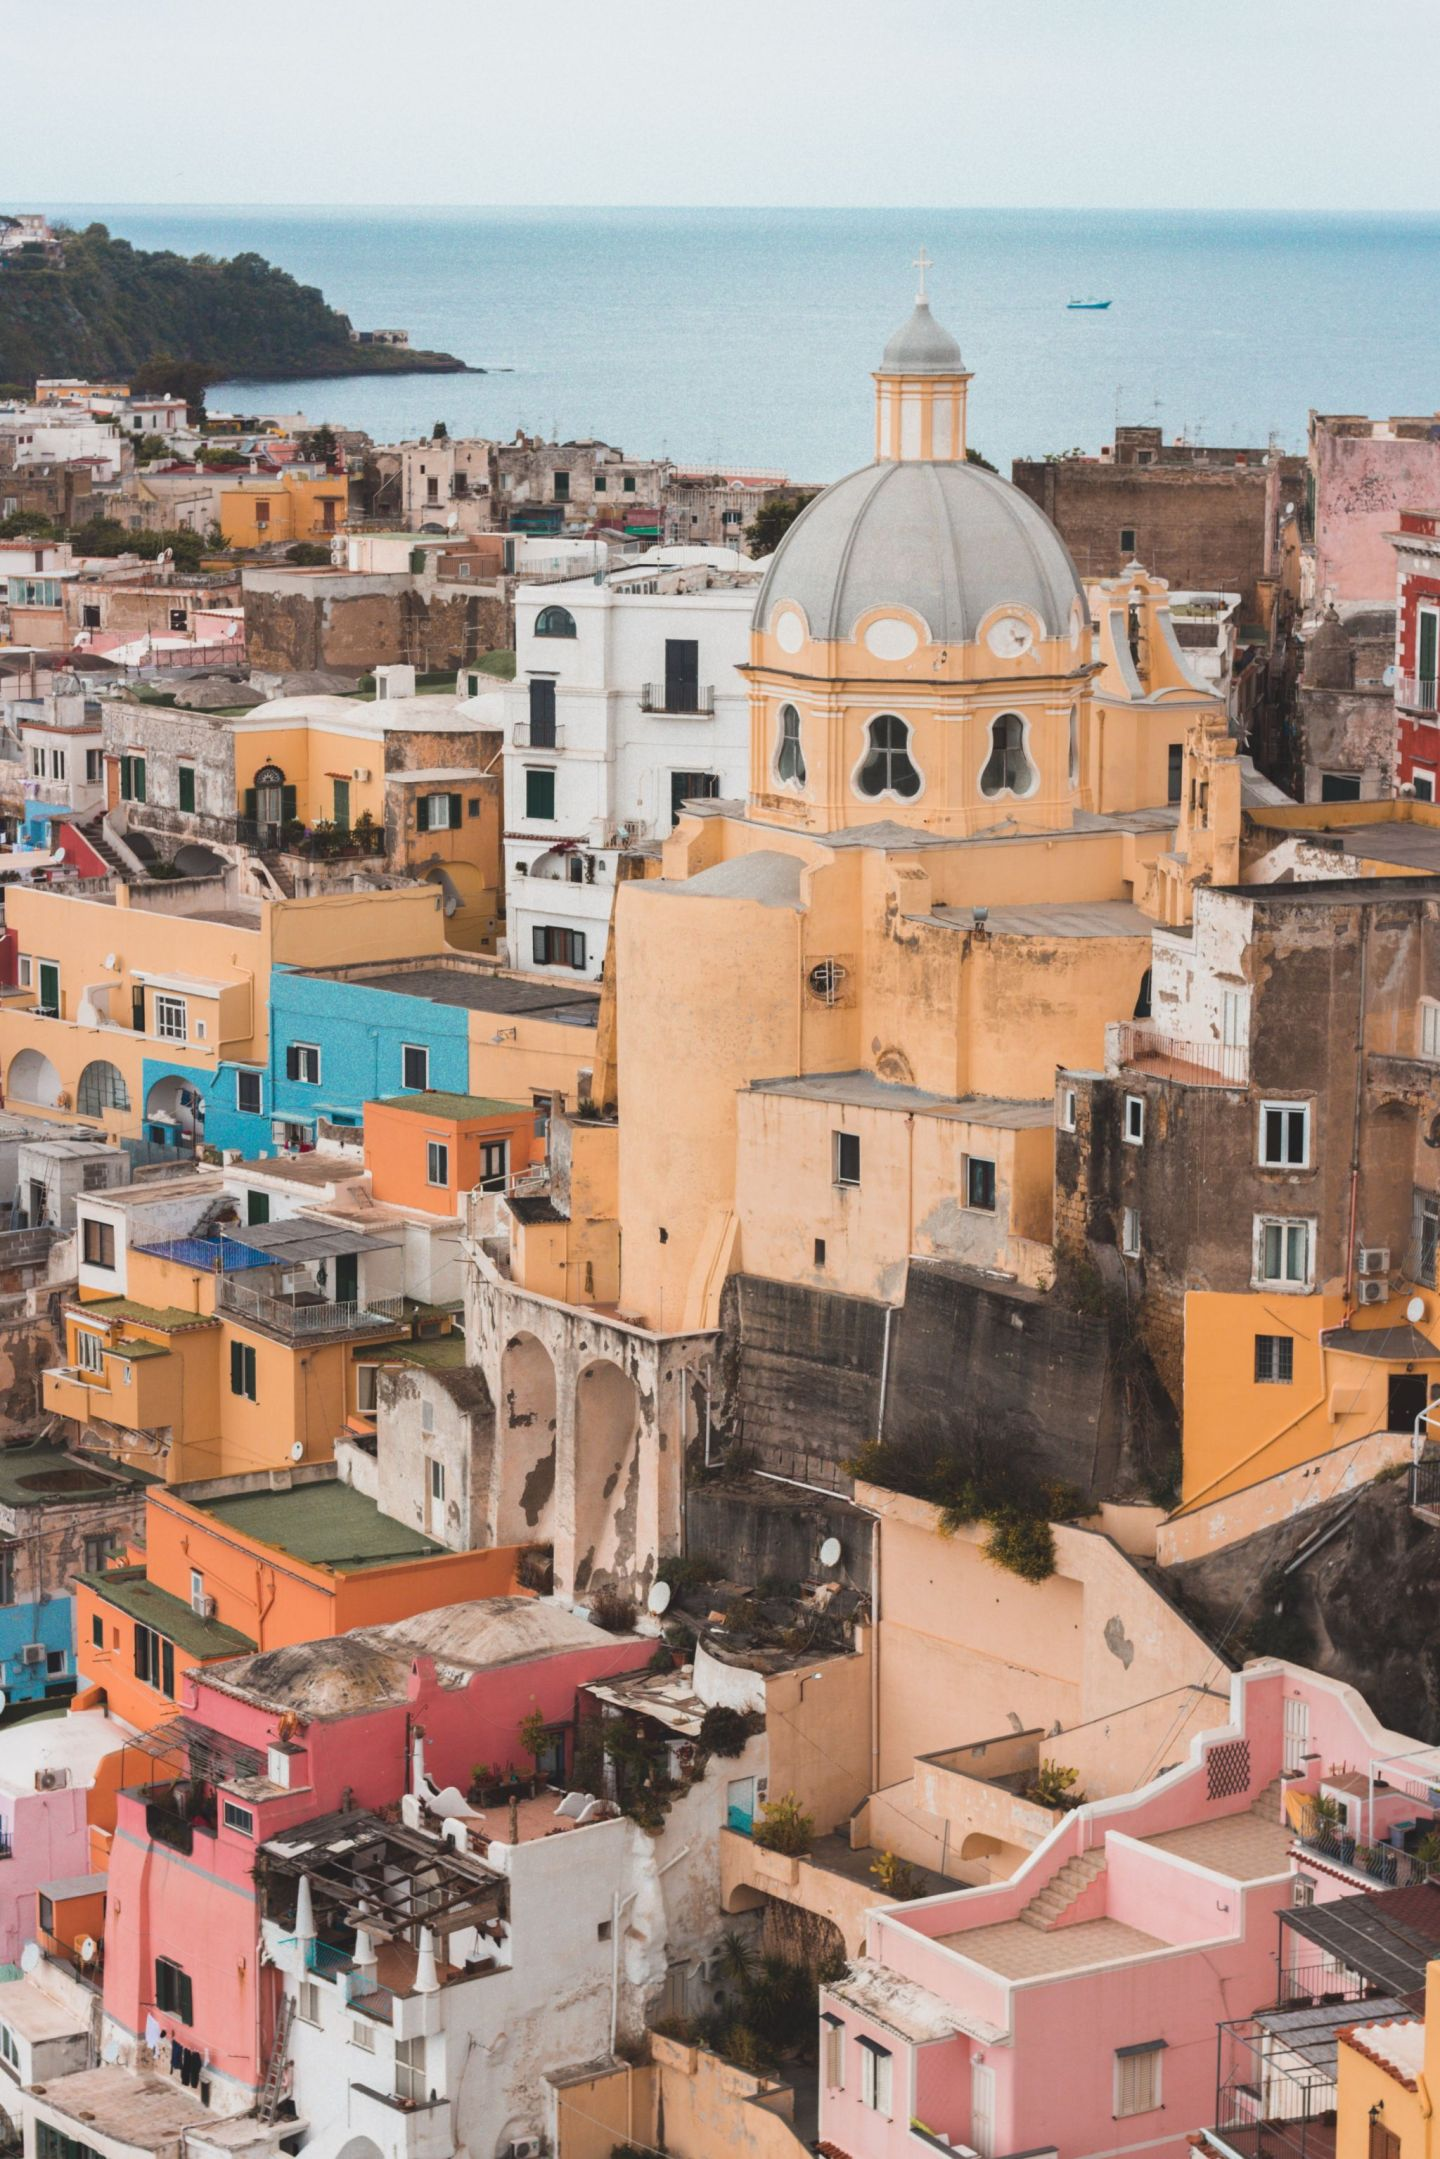 Beautiful buildings in Procida